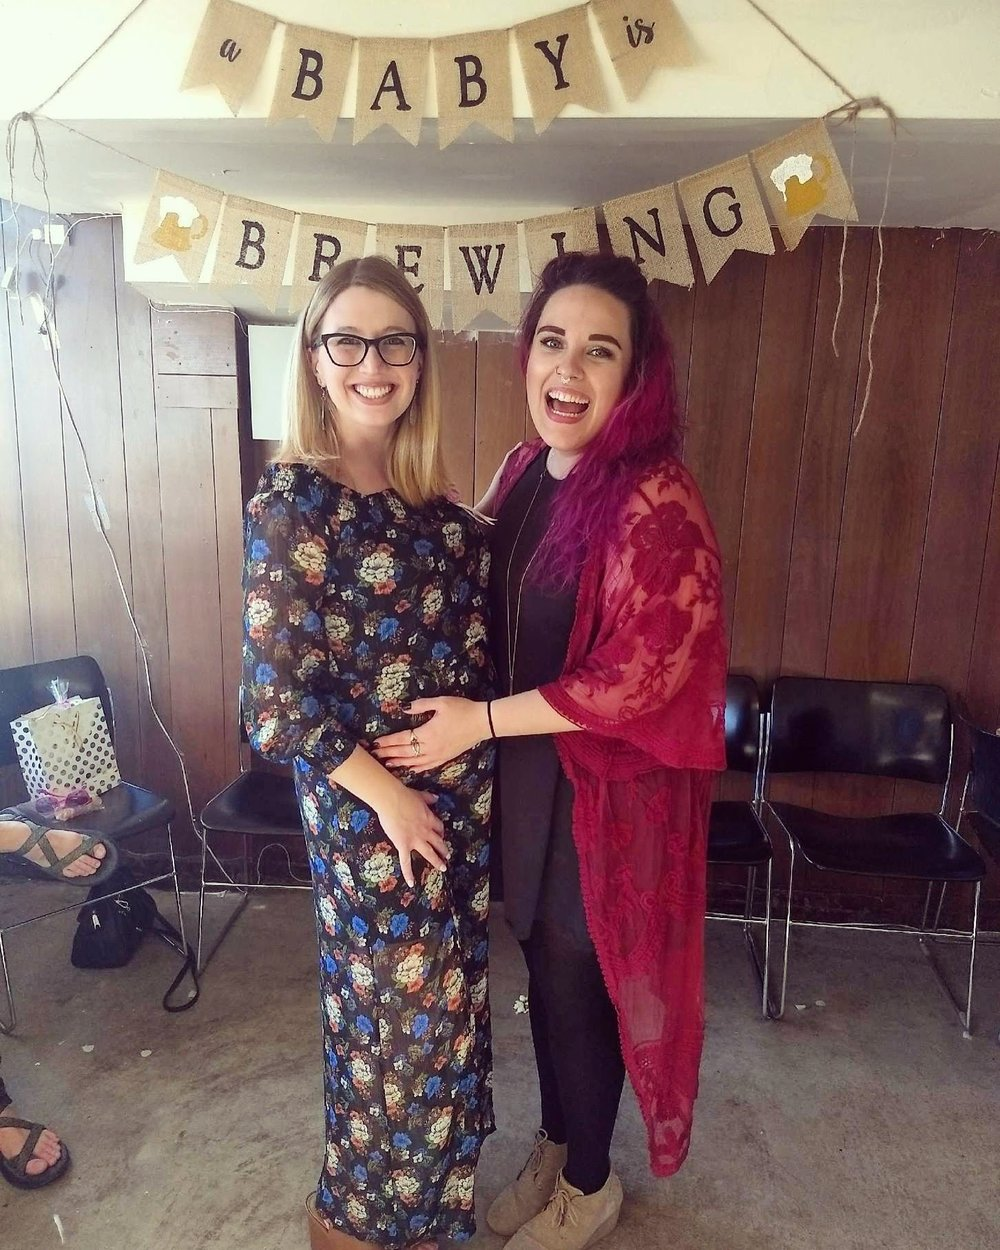 Nicole (left) and Ashley (right) at Nicole's baby shower.